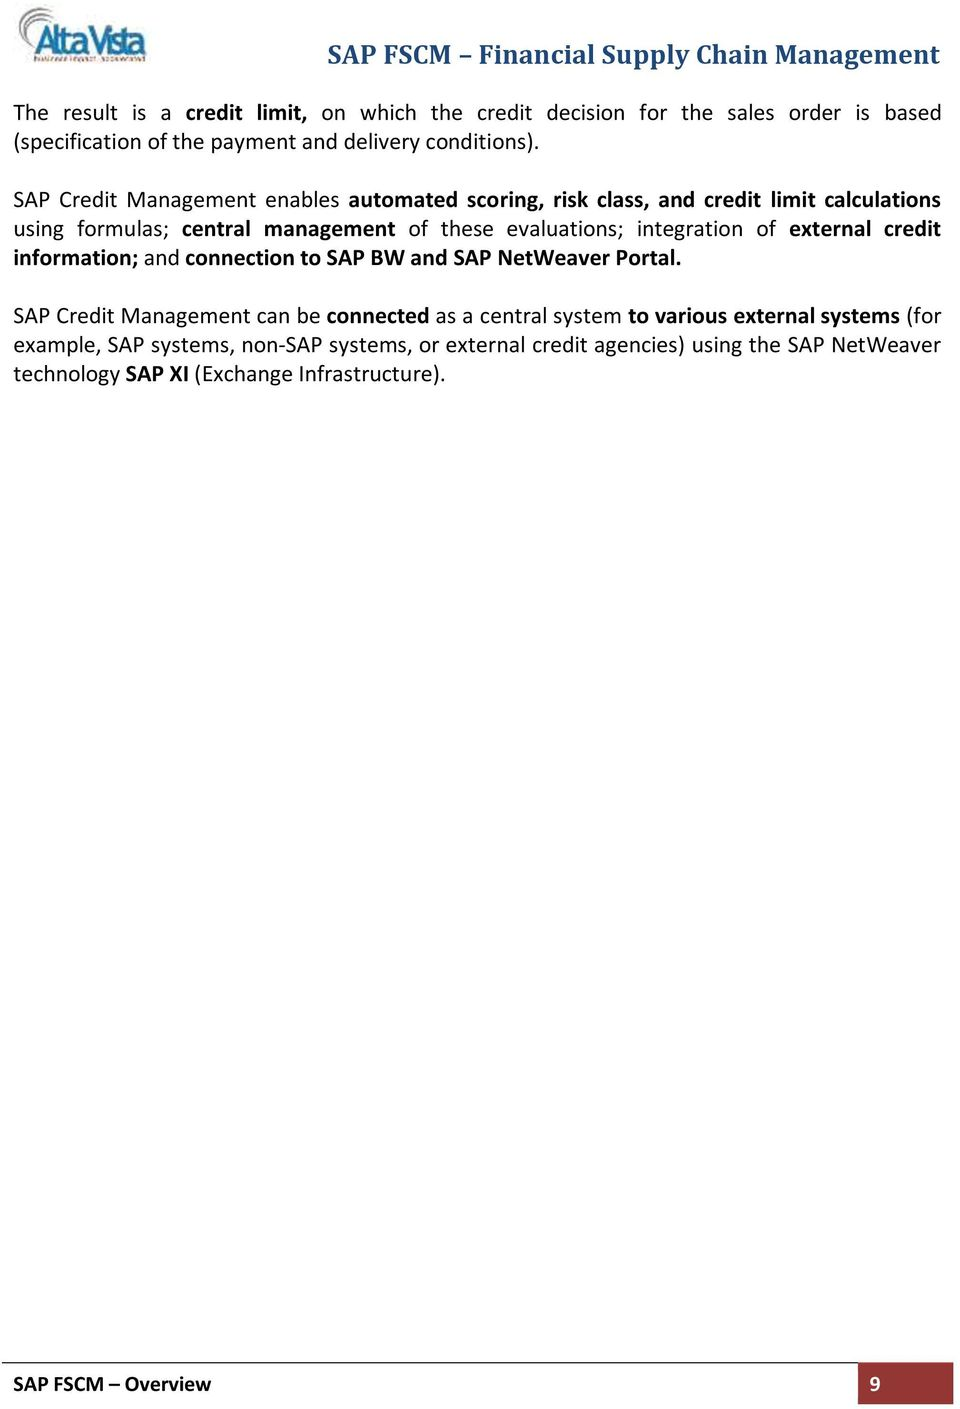 integration of external credit information; and connection to SAP BW and SAP NetWeaver Portal.